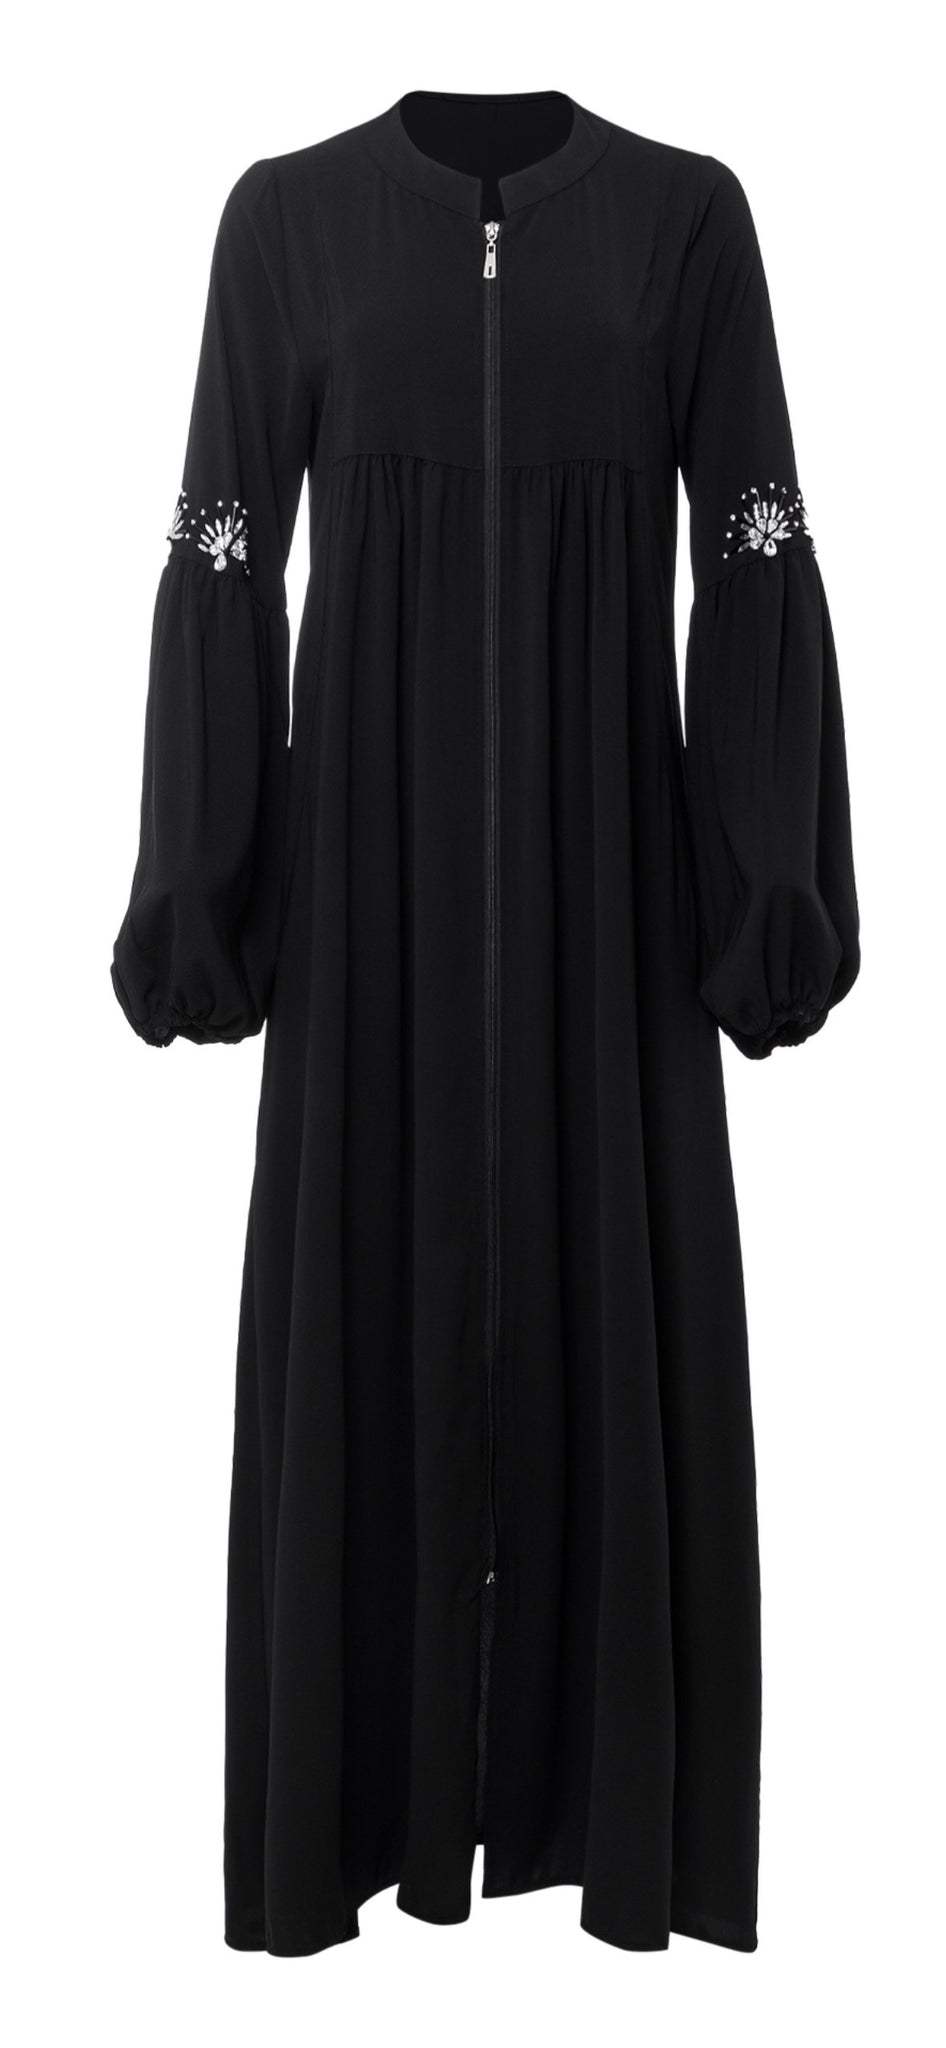 Black Gemstone Abaya